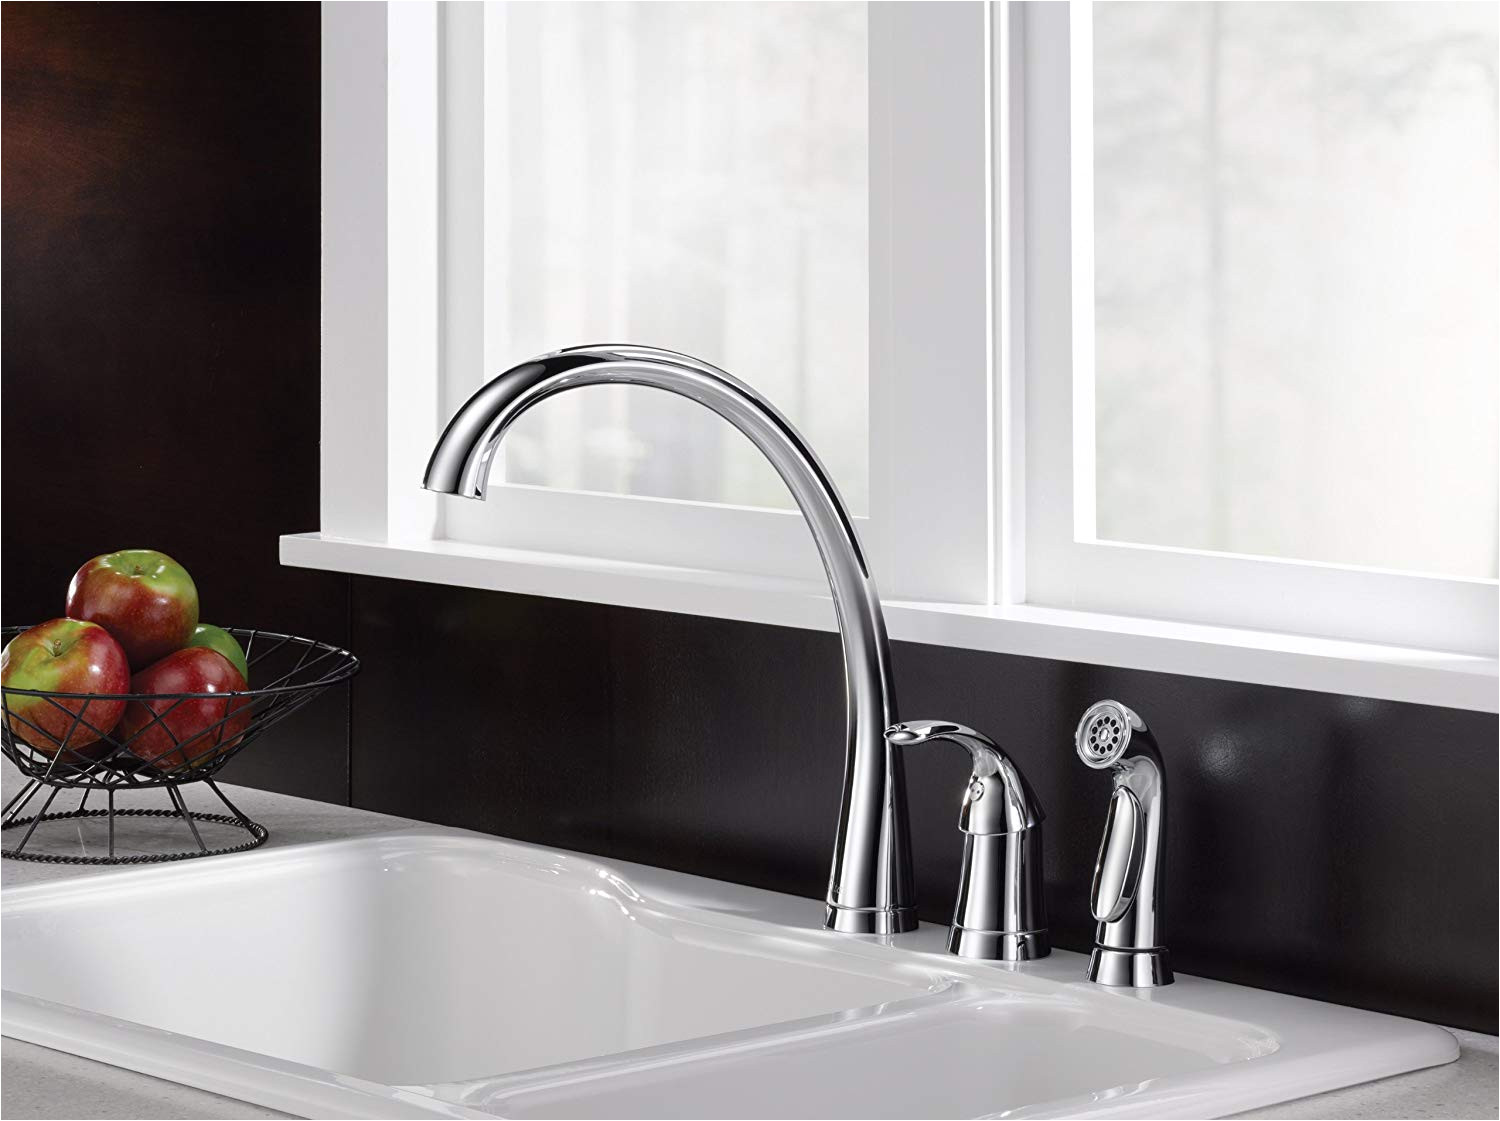 delta faucet pilar single handle kitchen sink faucet with side sprayer in matching finish chrome 4380 dst touch on kitchen sink faucets amazon com